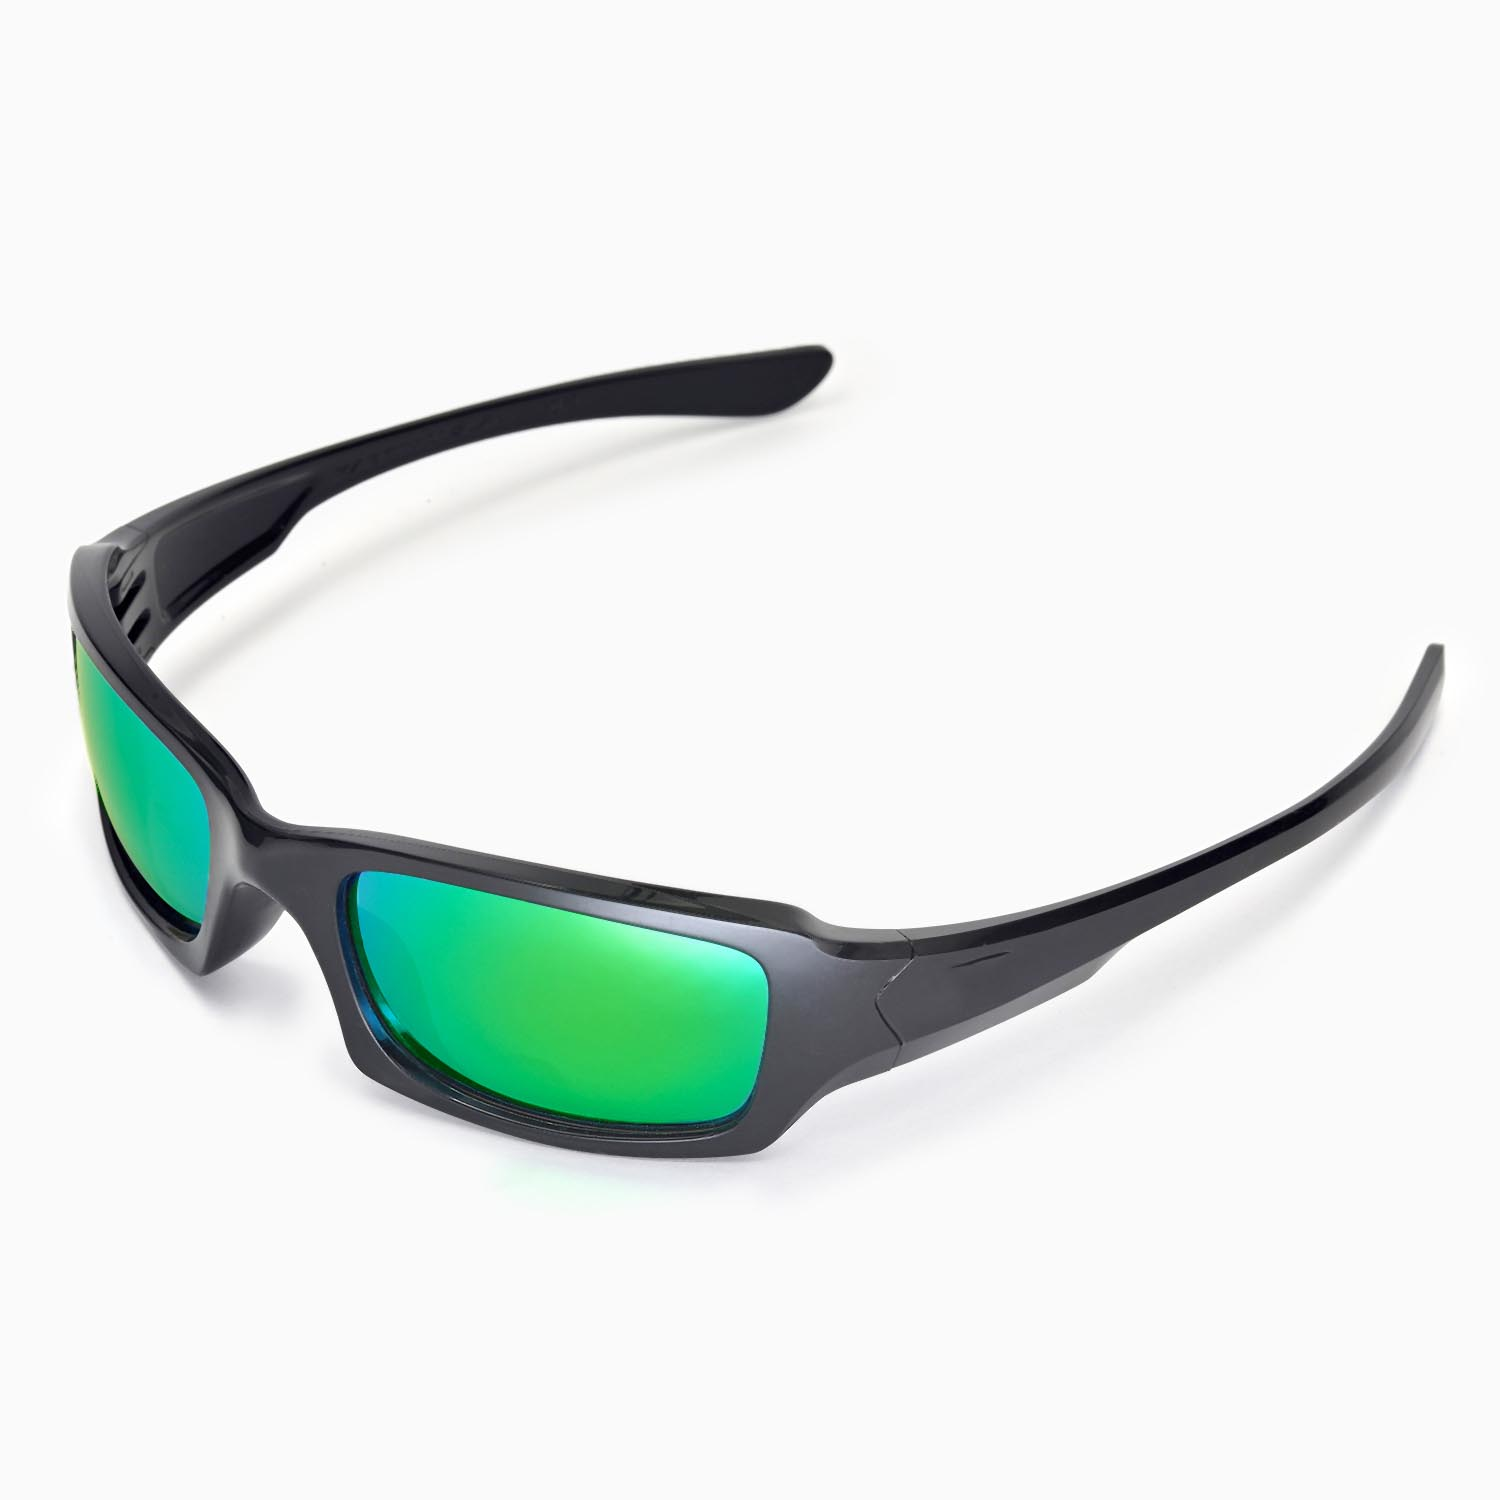 new wl polarized emerald replacement lenses for oakley. Black Bedroom Furniture Sets. Home Design Ideas